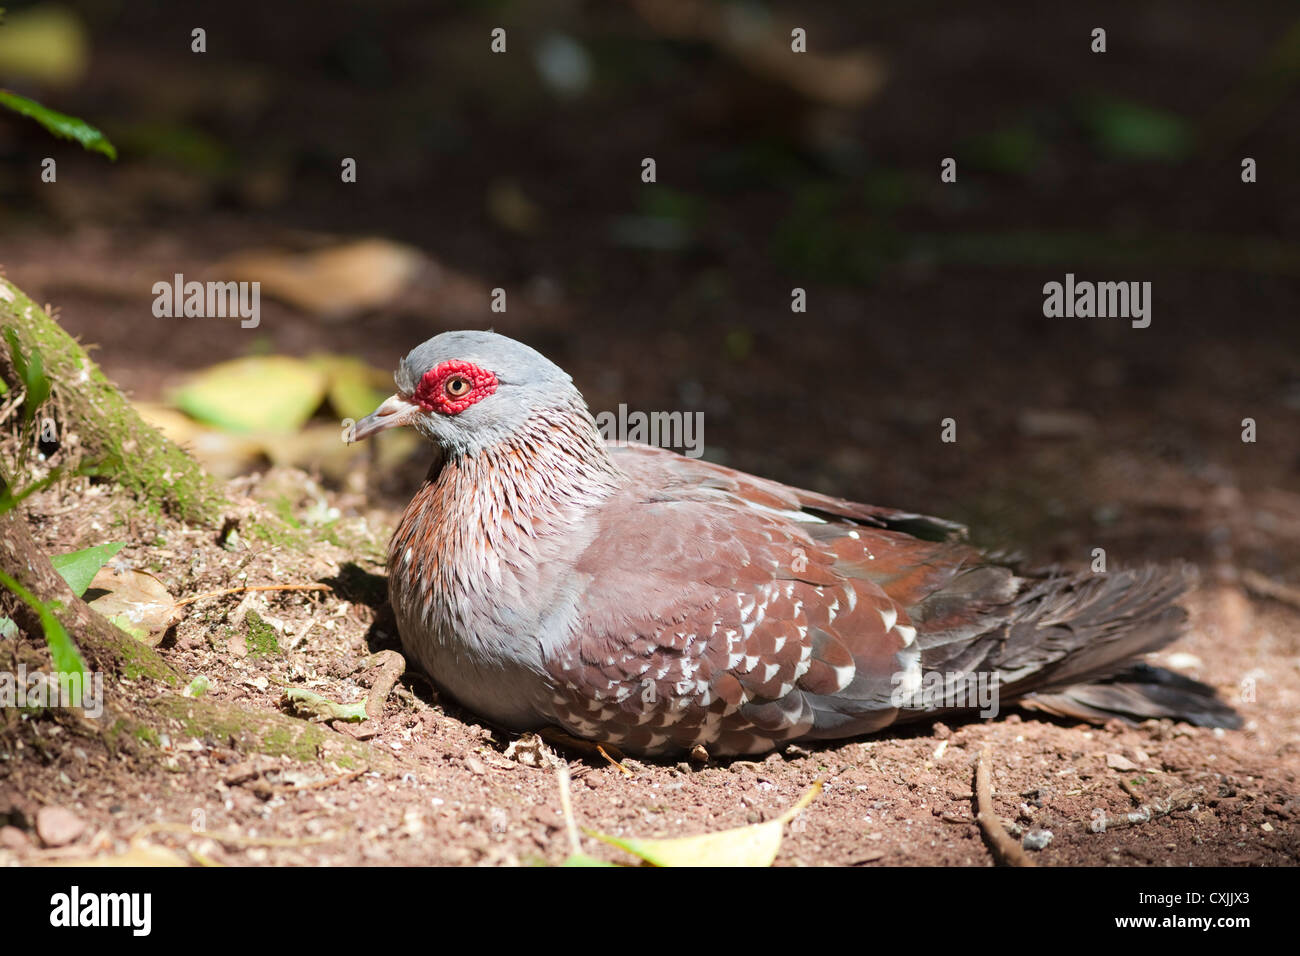 Diamond Dove (Geopelia cuneata) resting on ground - Stock Image